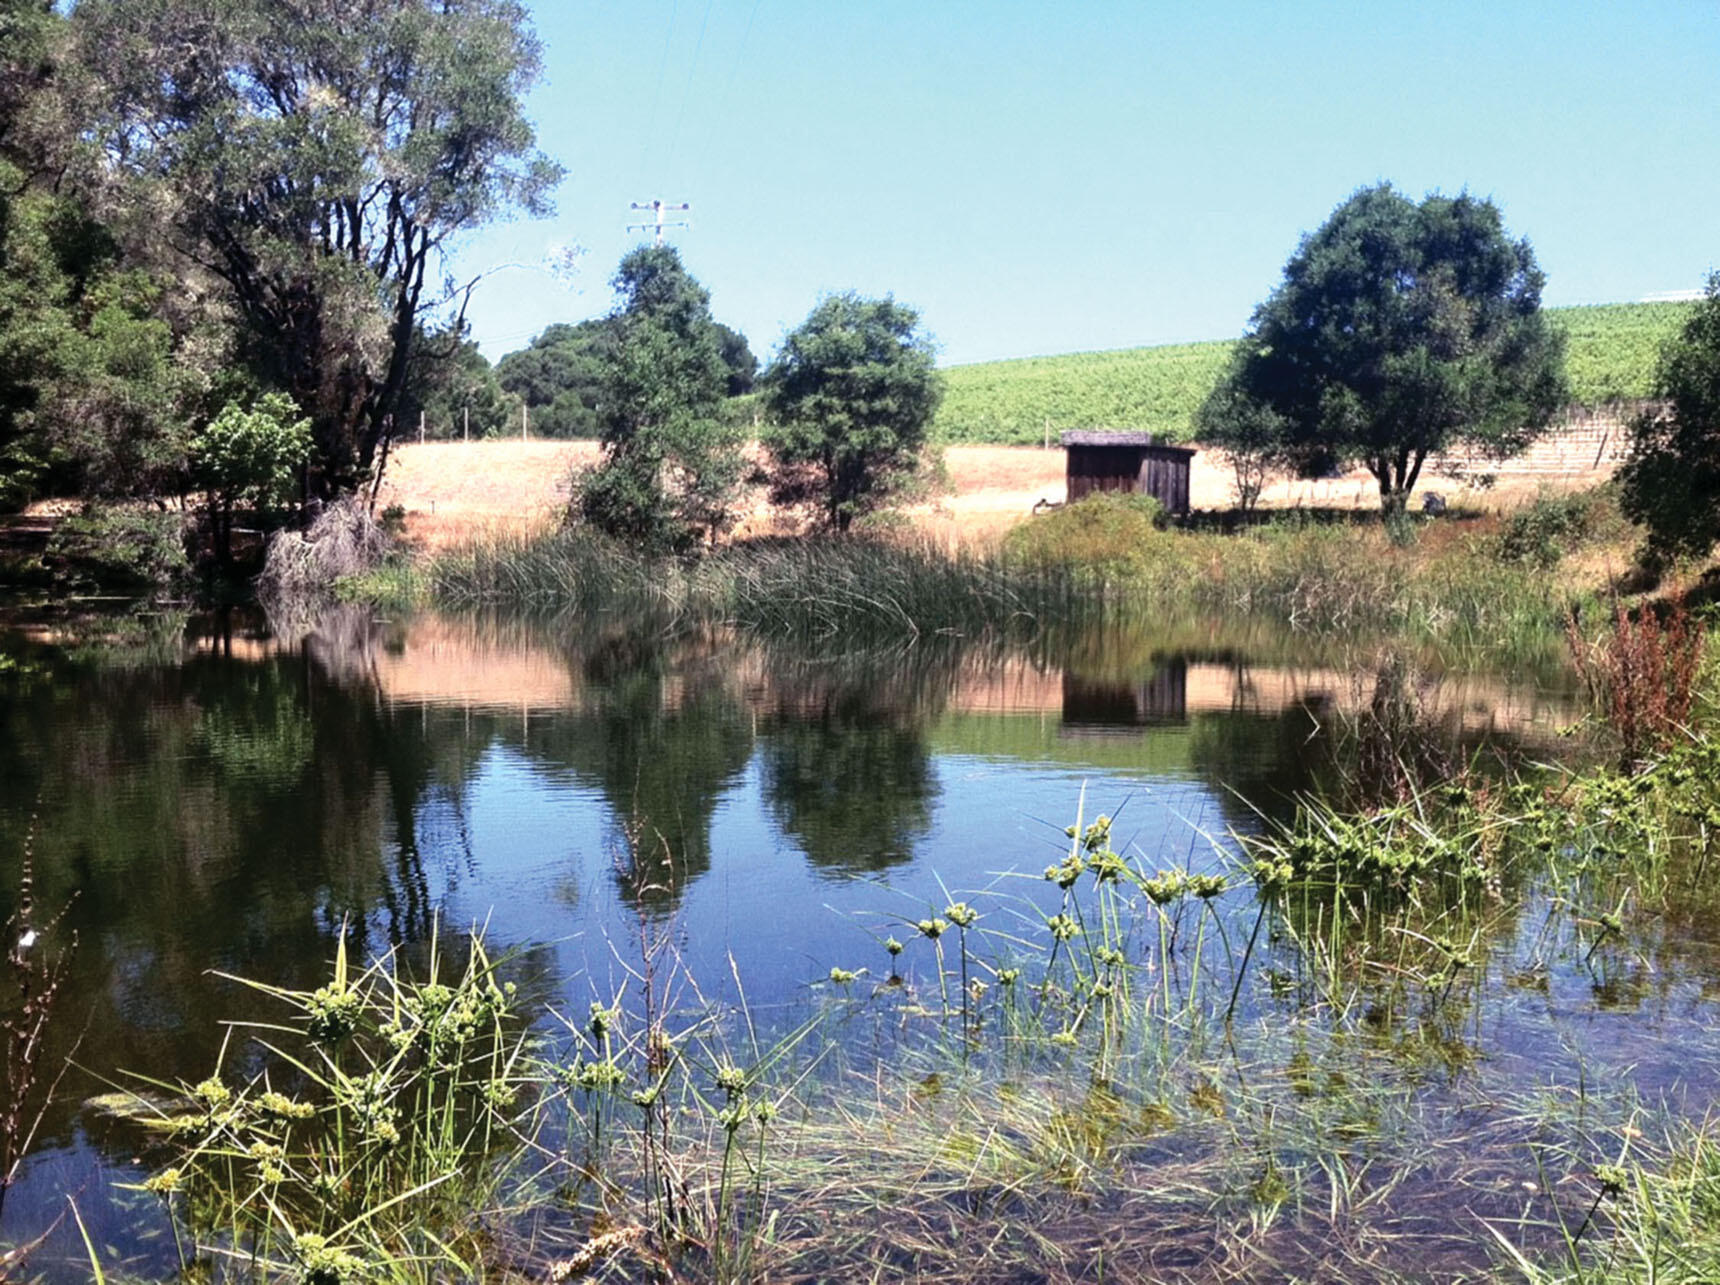 This reservoir at Husch Vineyards in Anderson Valley, California, is used to provide water during the dry season to prevent overreliance on the neighboring Navarro River. (Photo courtesy of Adina Merenlender.)